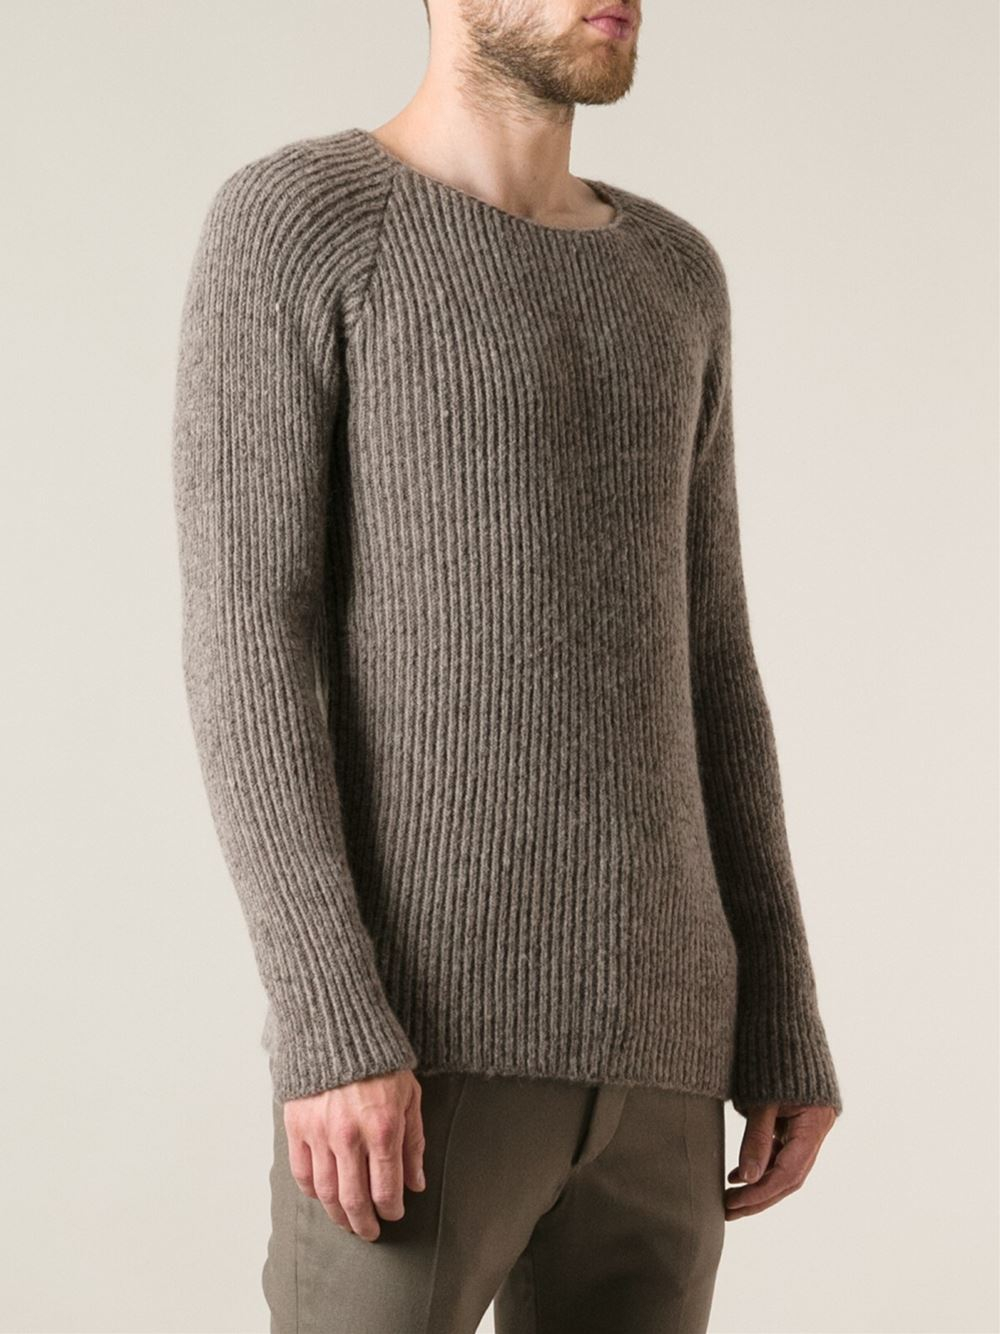 Haider ackermann Ribbed Sweater in Brown for Men | Lyst